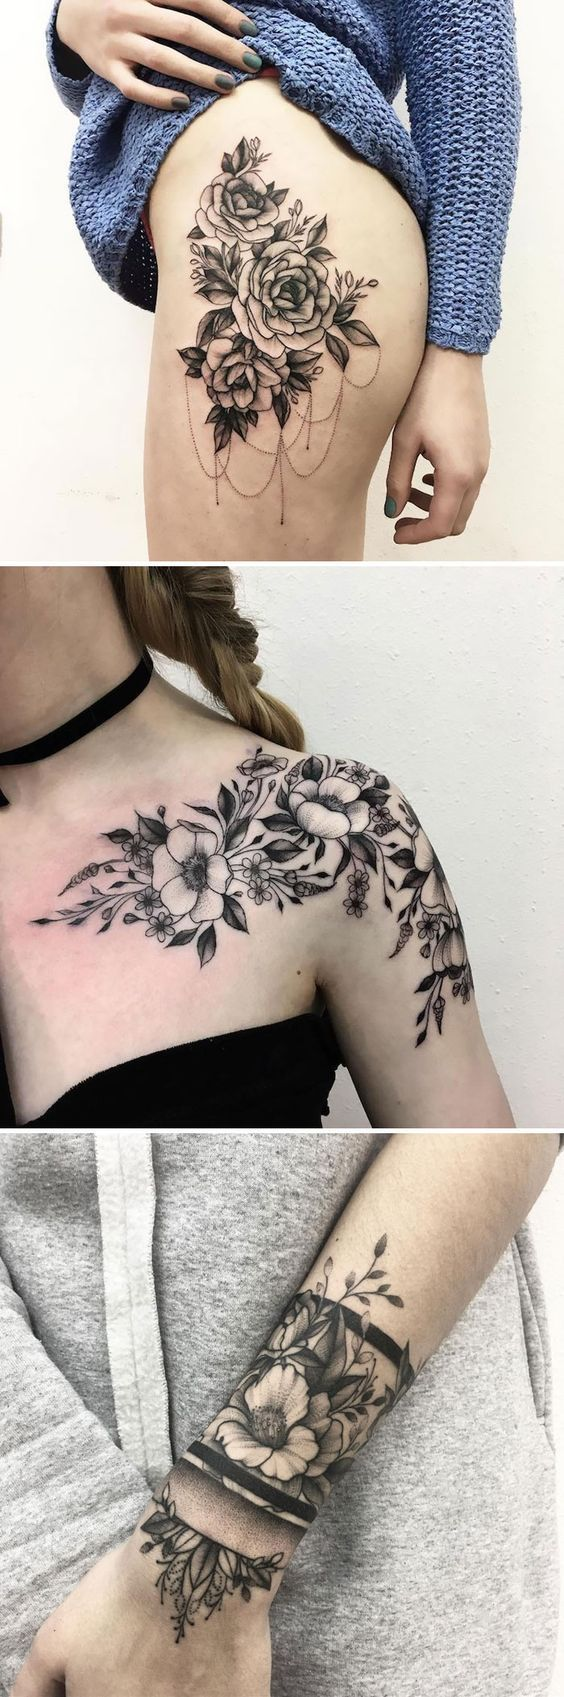 Floral Tattoo Artists Who Will Make You Want To Get Inked